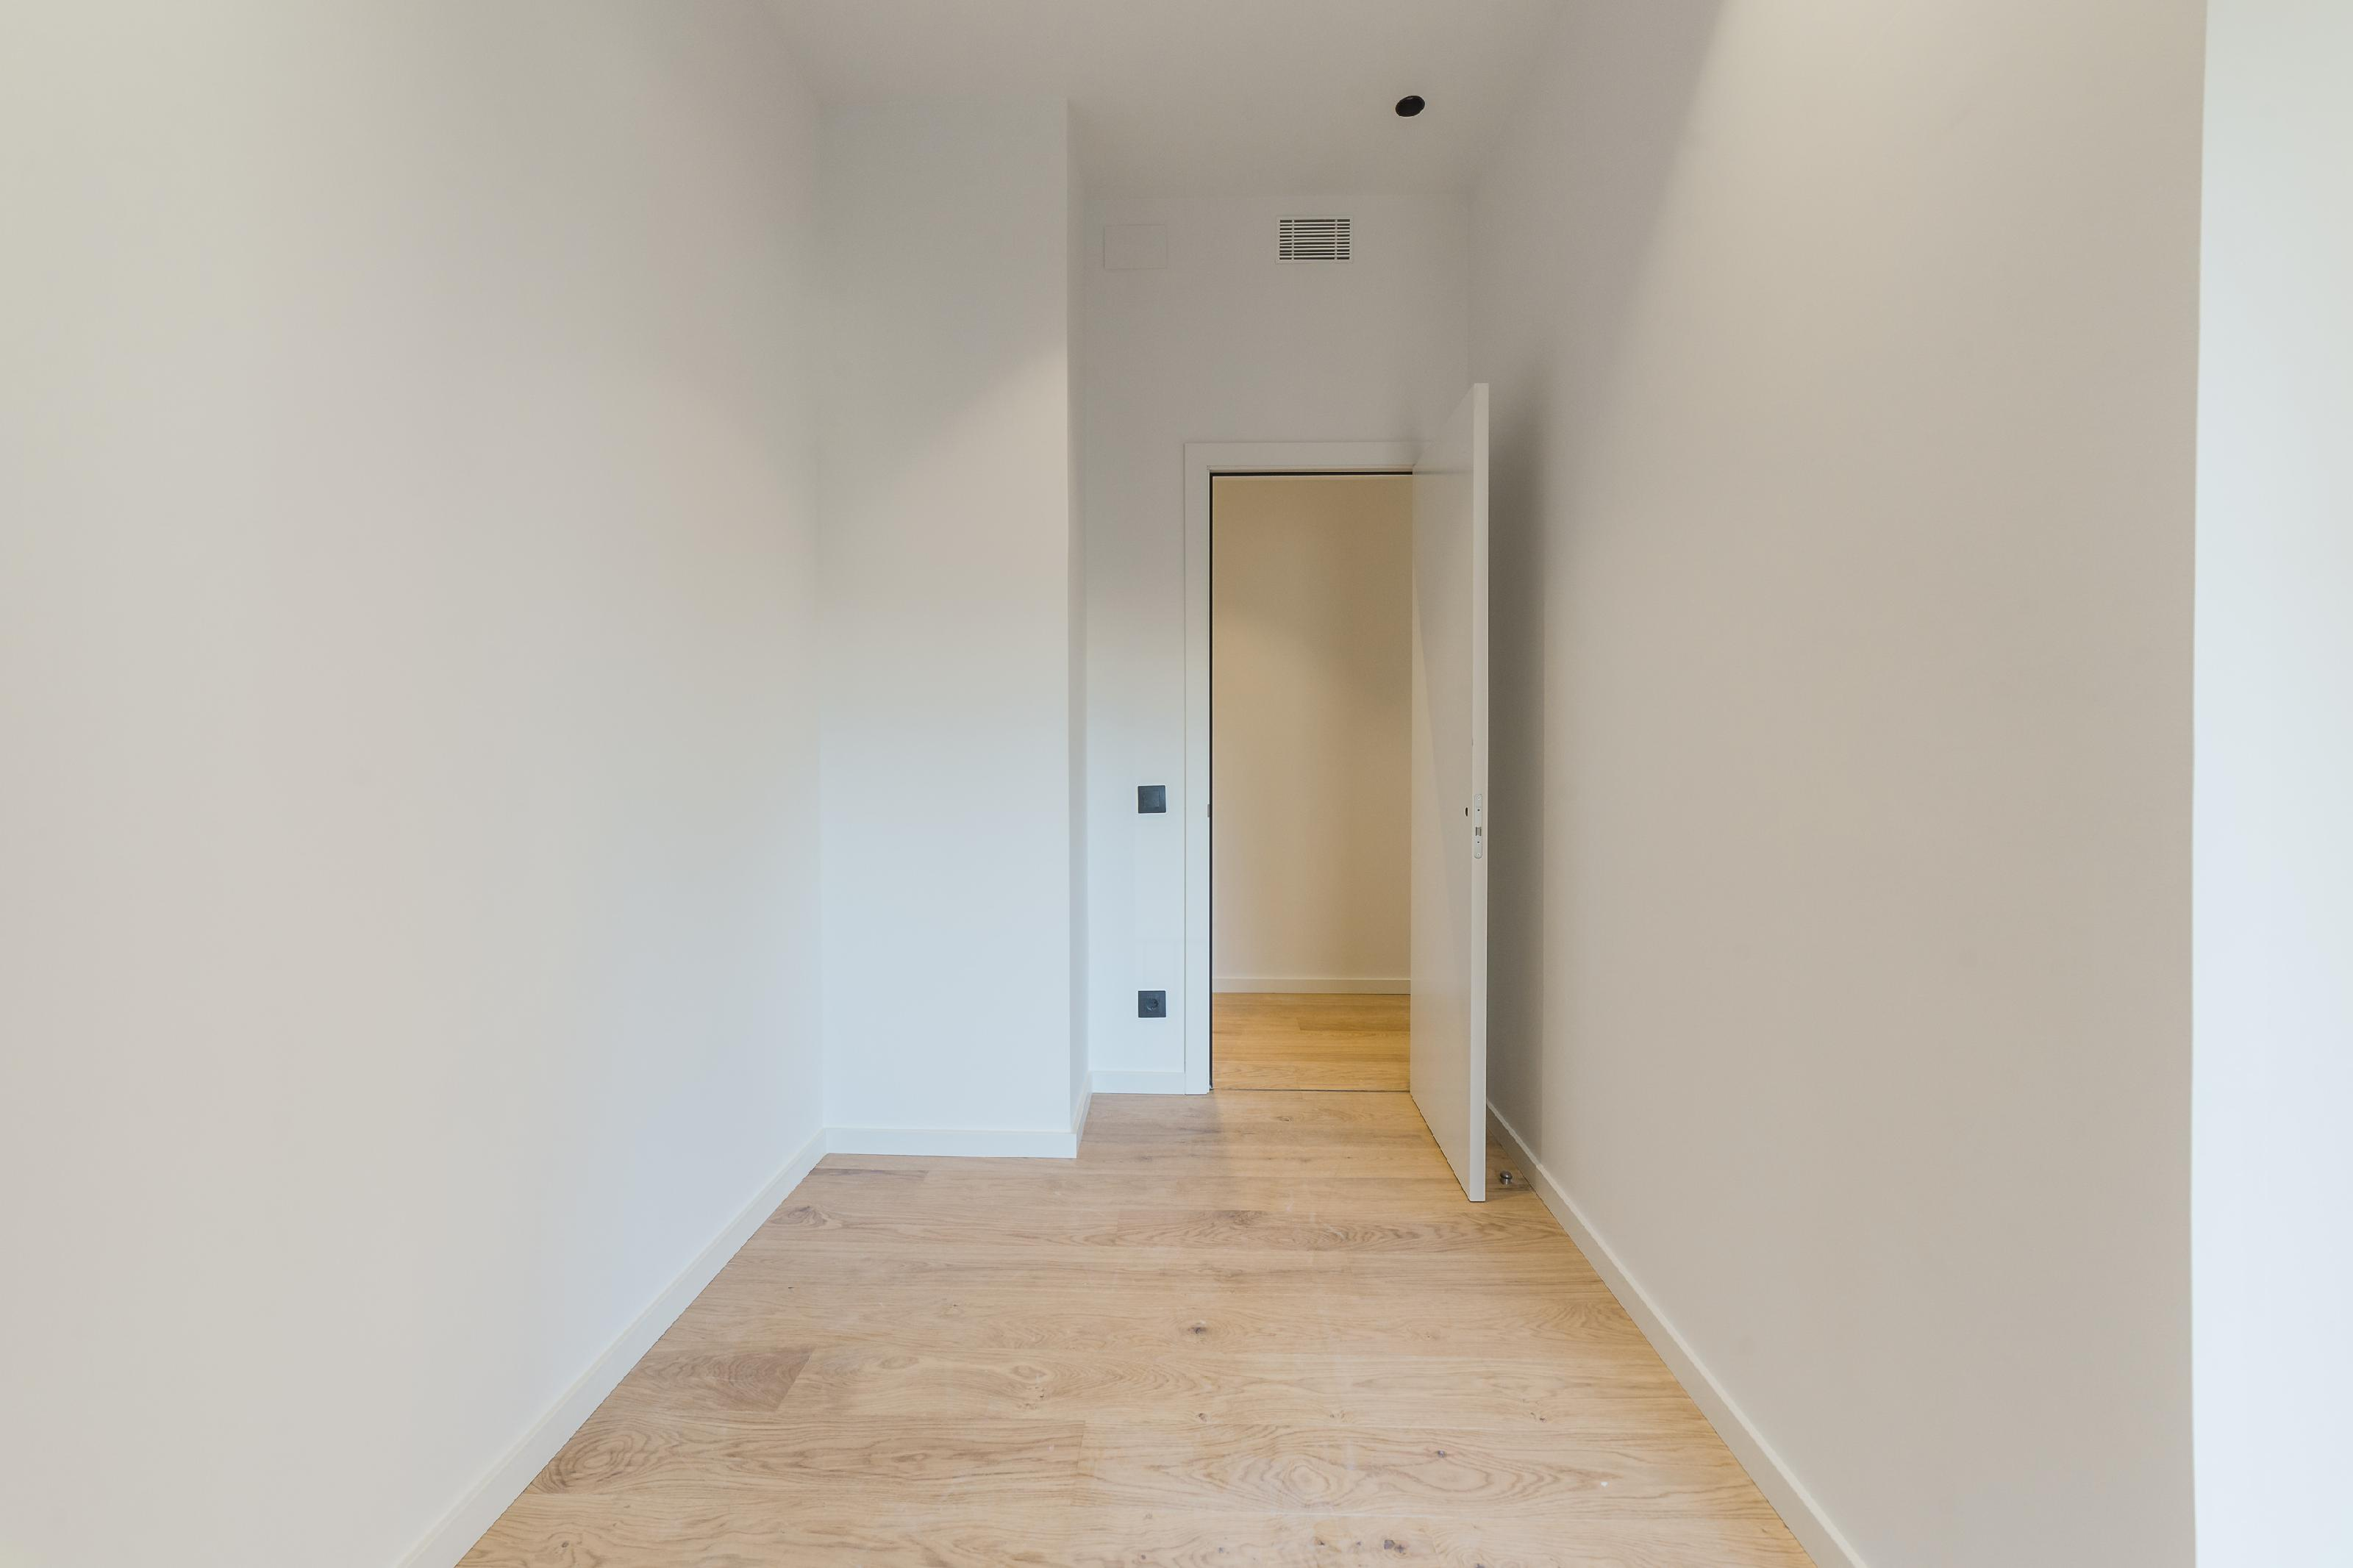 182474 Apartment for sale in Eixample, Old Left Eixample 33